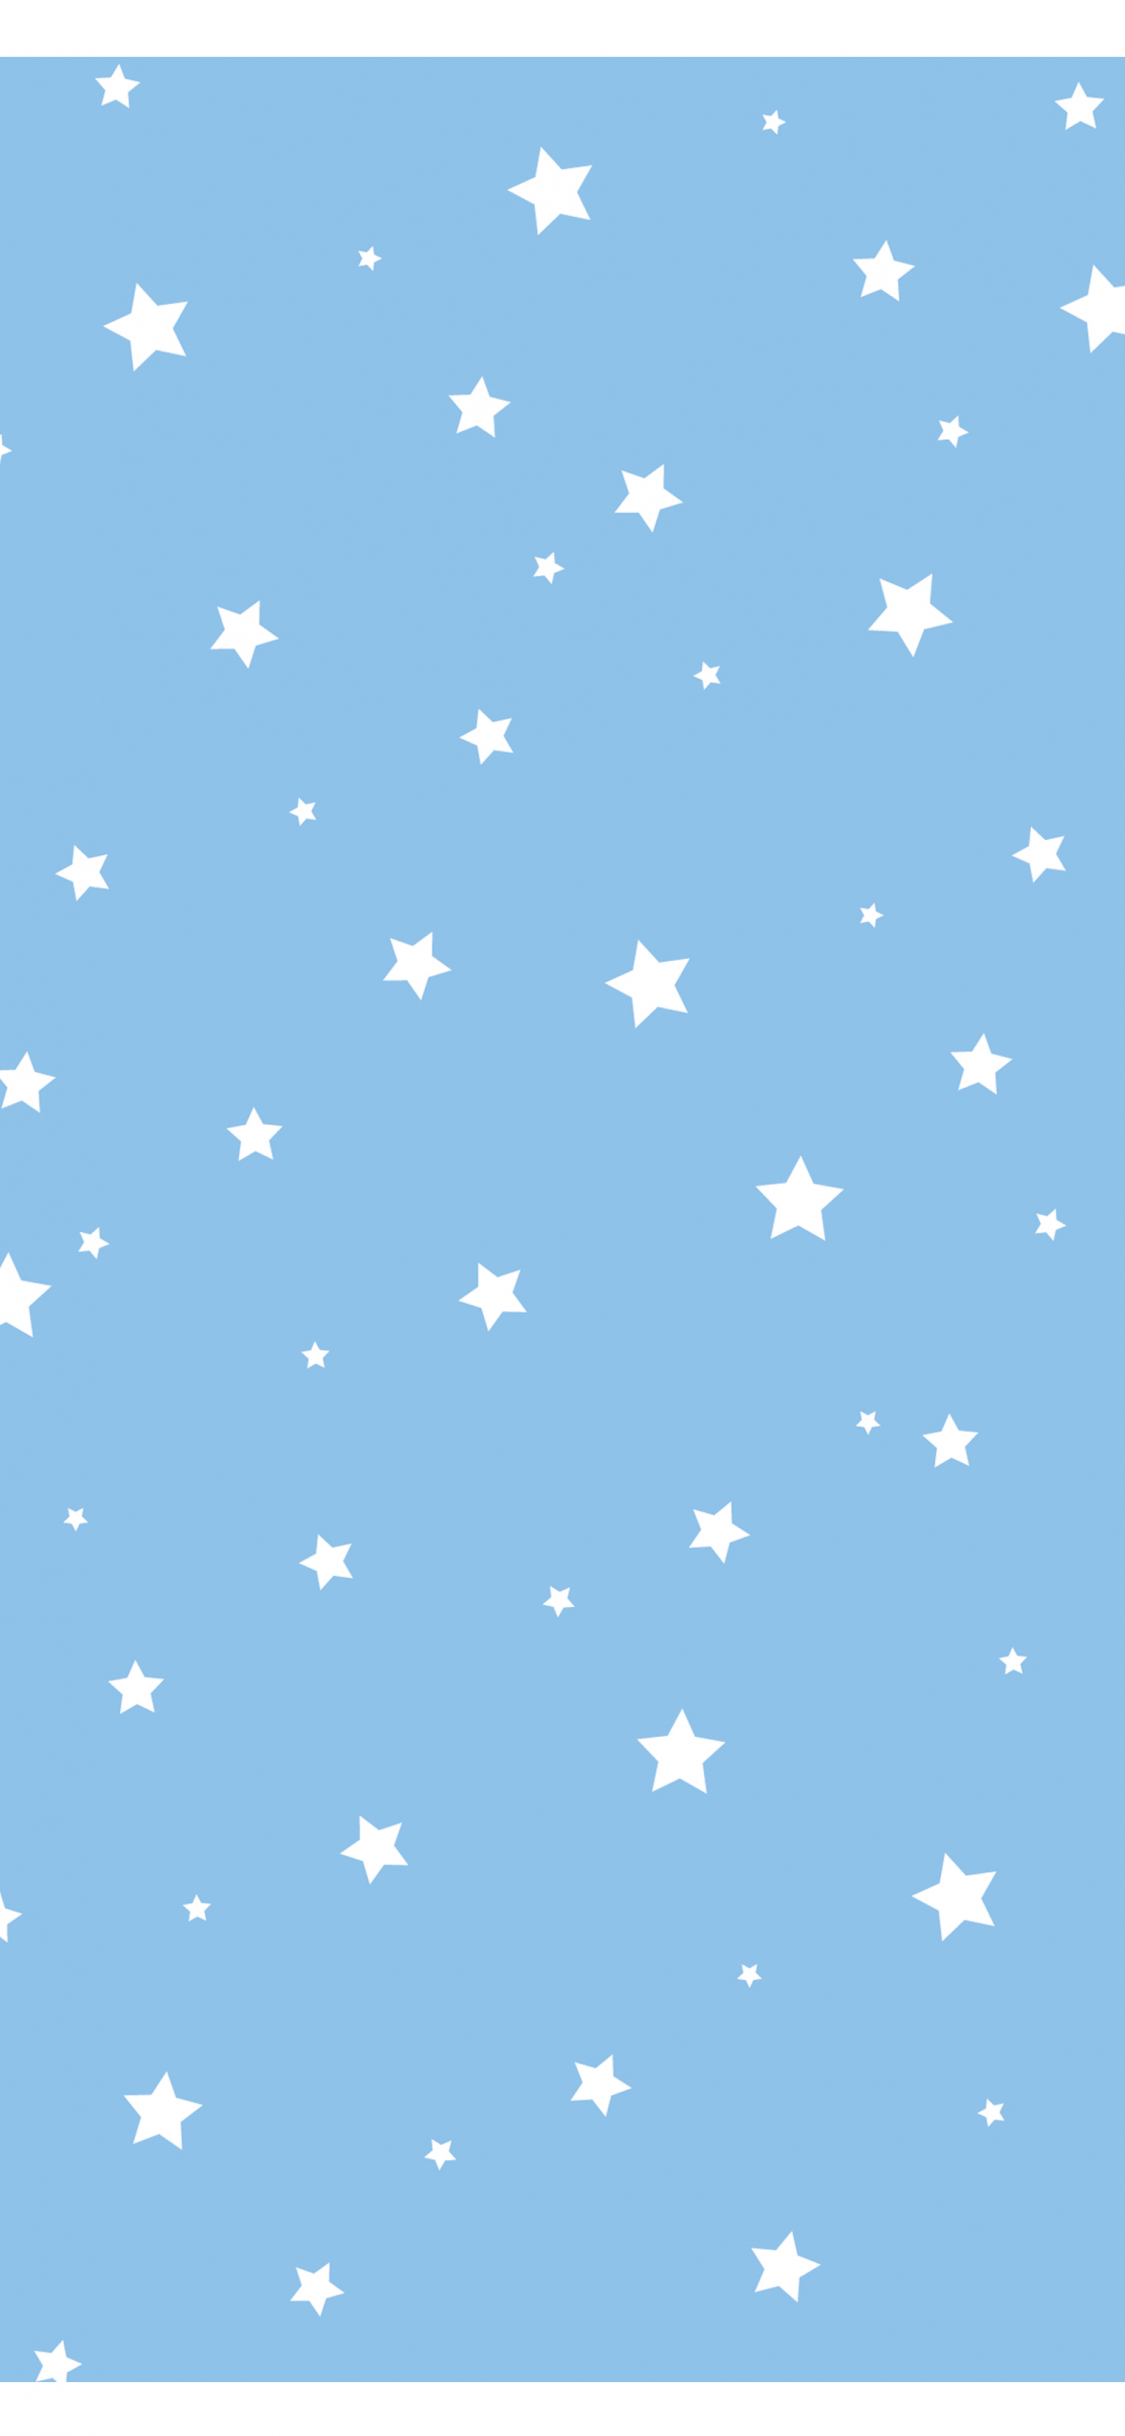 Free download Viewing Gallery For Baby Blue Stars 3300x3300 for your Desktop, Mobile & Tablet ...